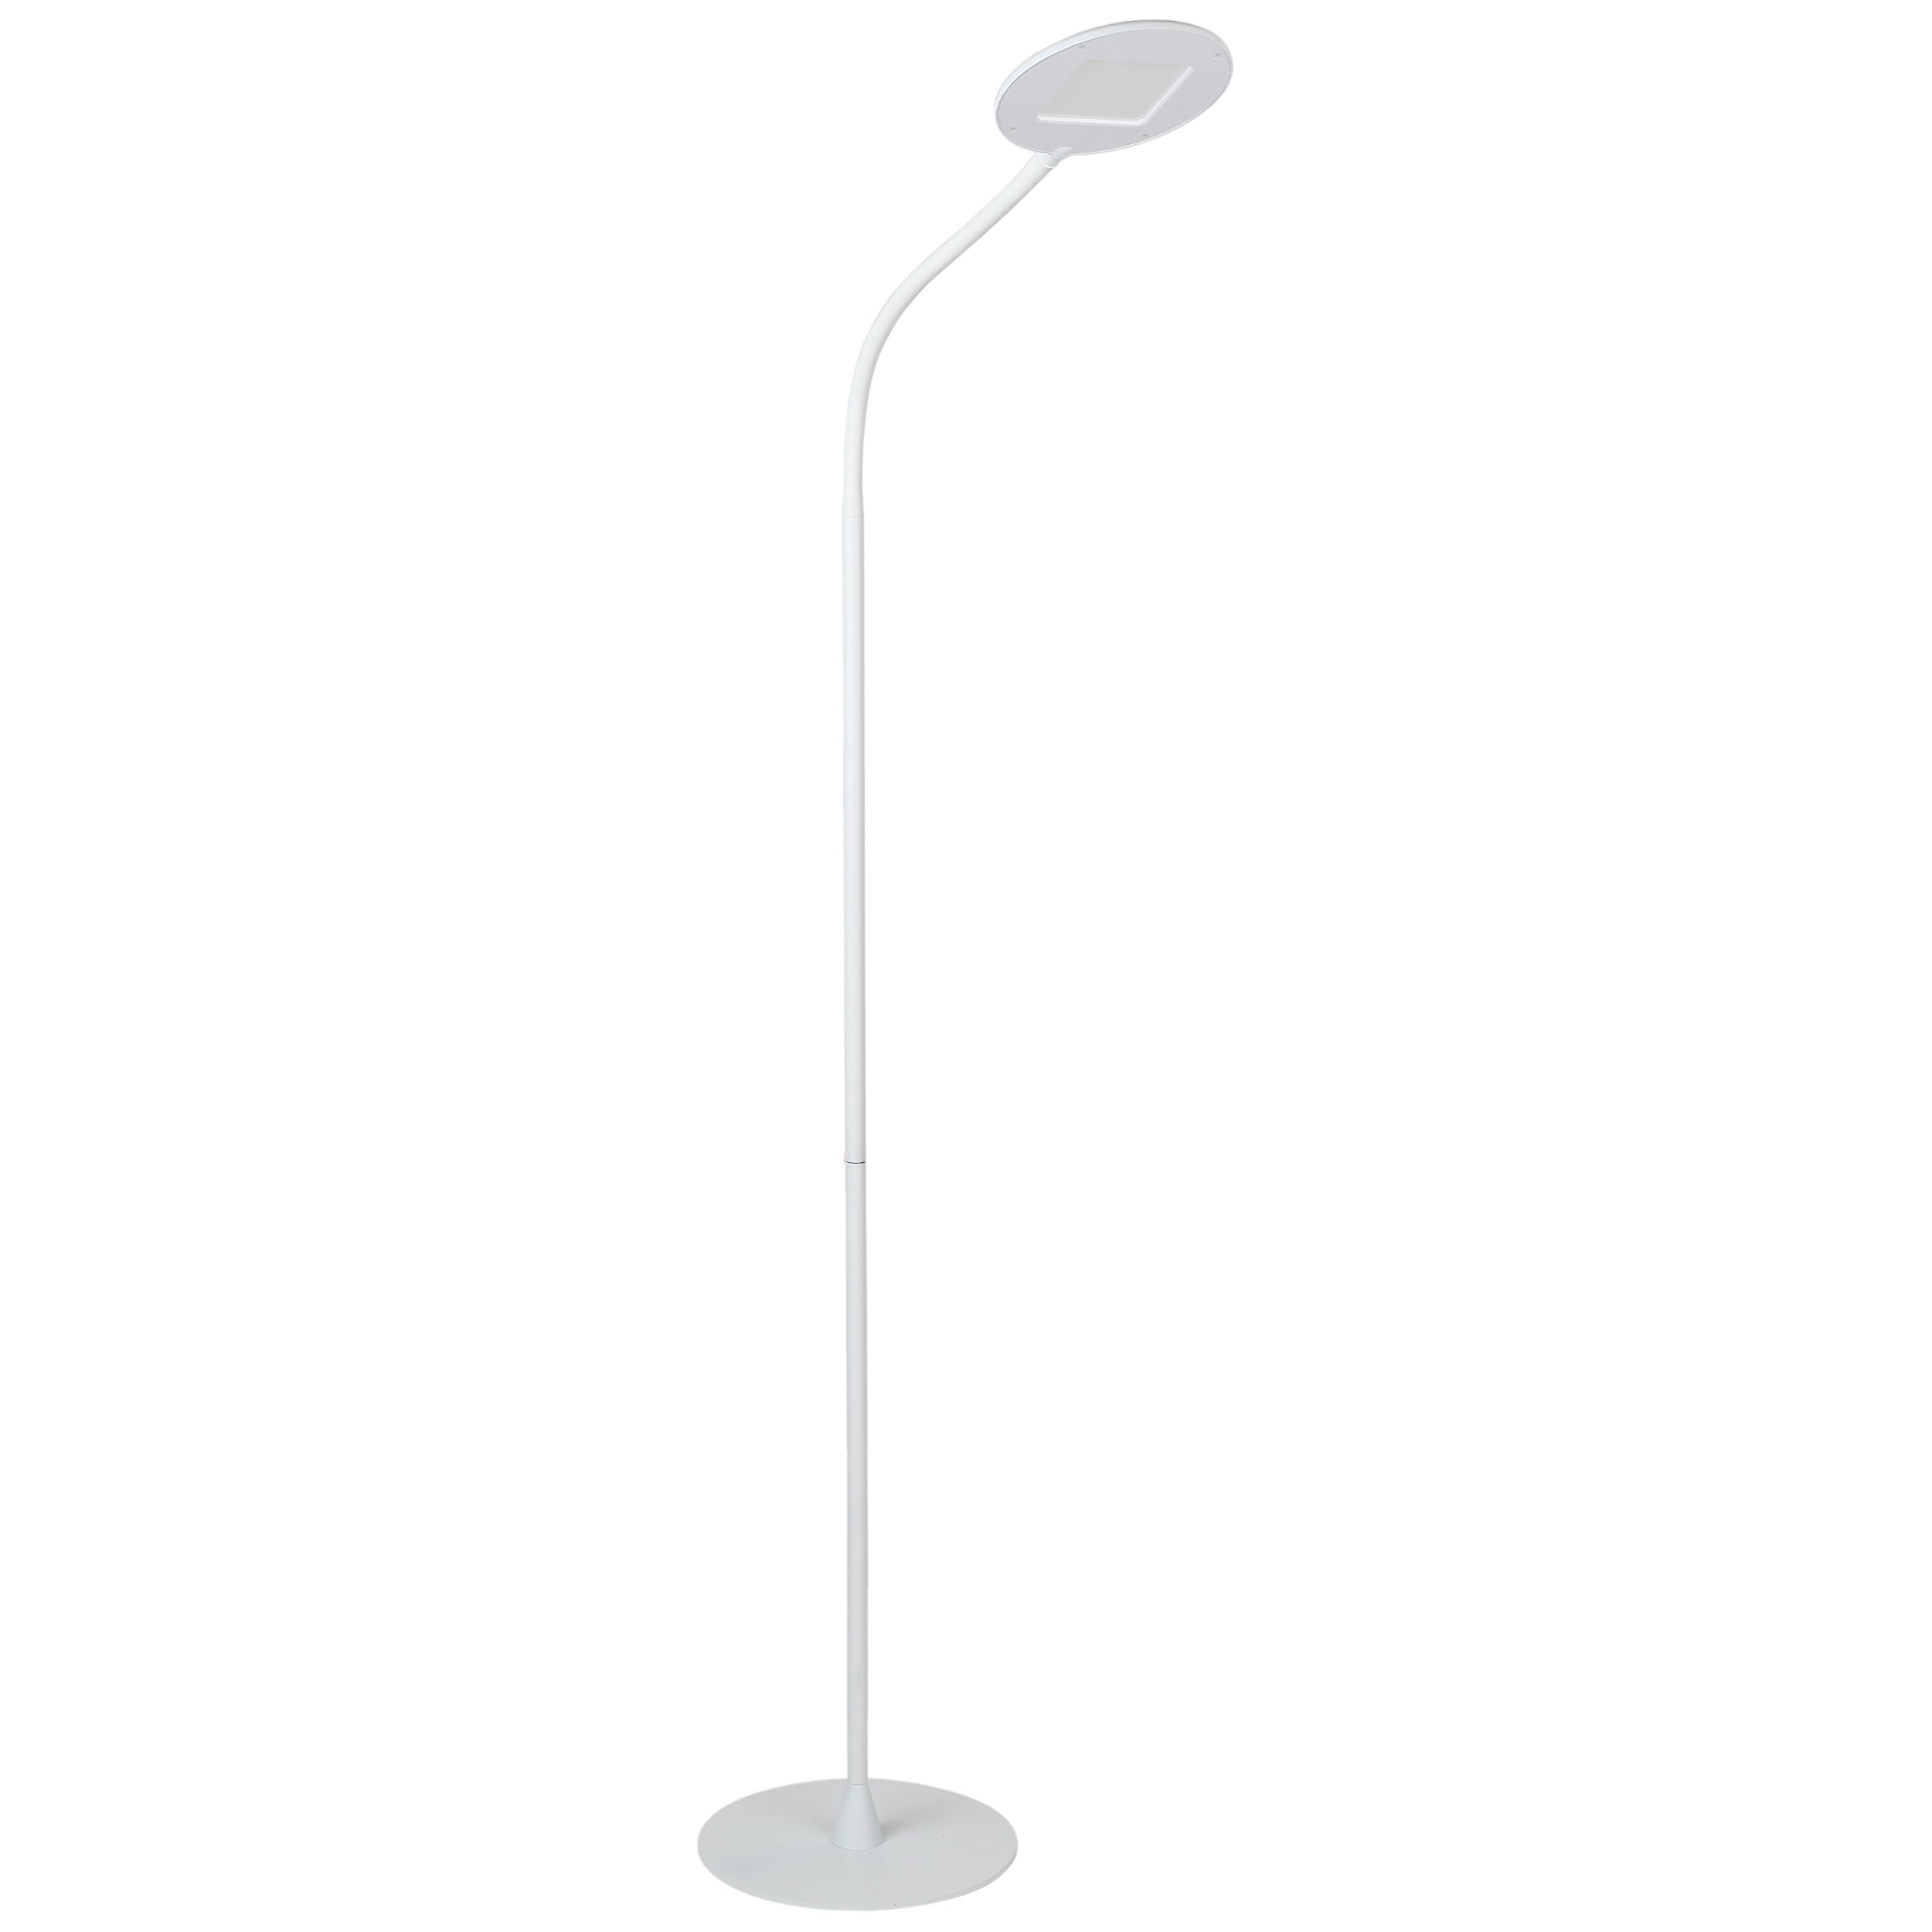 Brightech Contour Flex LED Floor Lamp for Reading, Crafts & Office Tasks – Adjustable Gooseneck & Bright, Dimmable Light Goes Beside Living Room Sofa- Contemporary Minimalist Pole Light - White